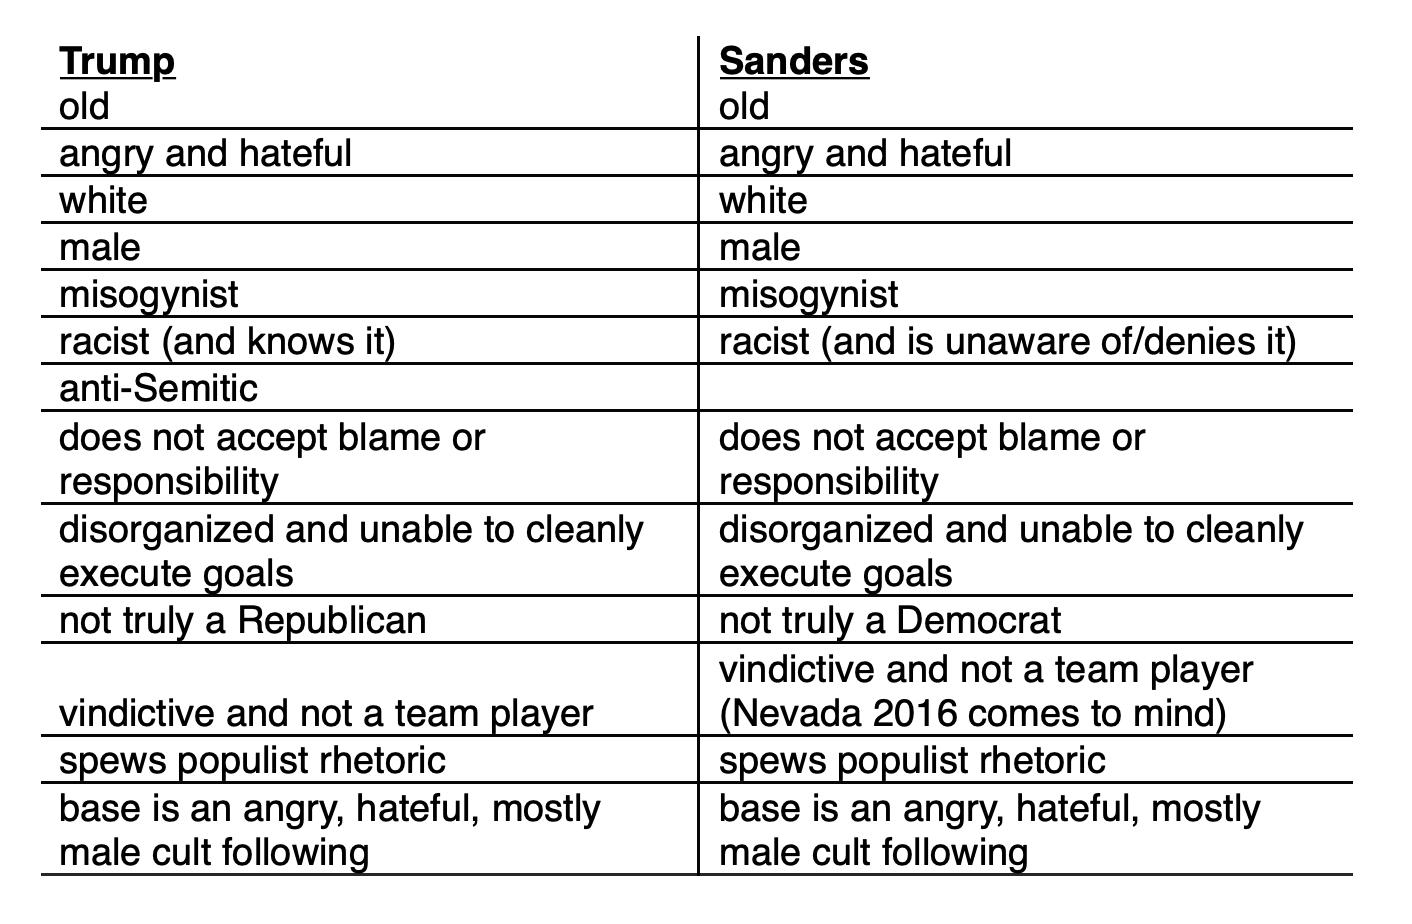 The image is a list of  characteristics common to Trump and Sanders, including that both are old, angry, misogynist, unable to accept blame for their errors, poplist, and appeal to a cultlike male following